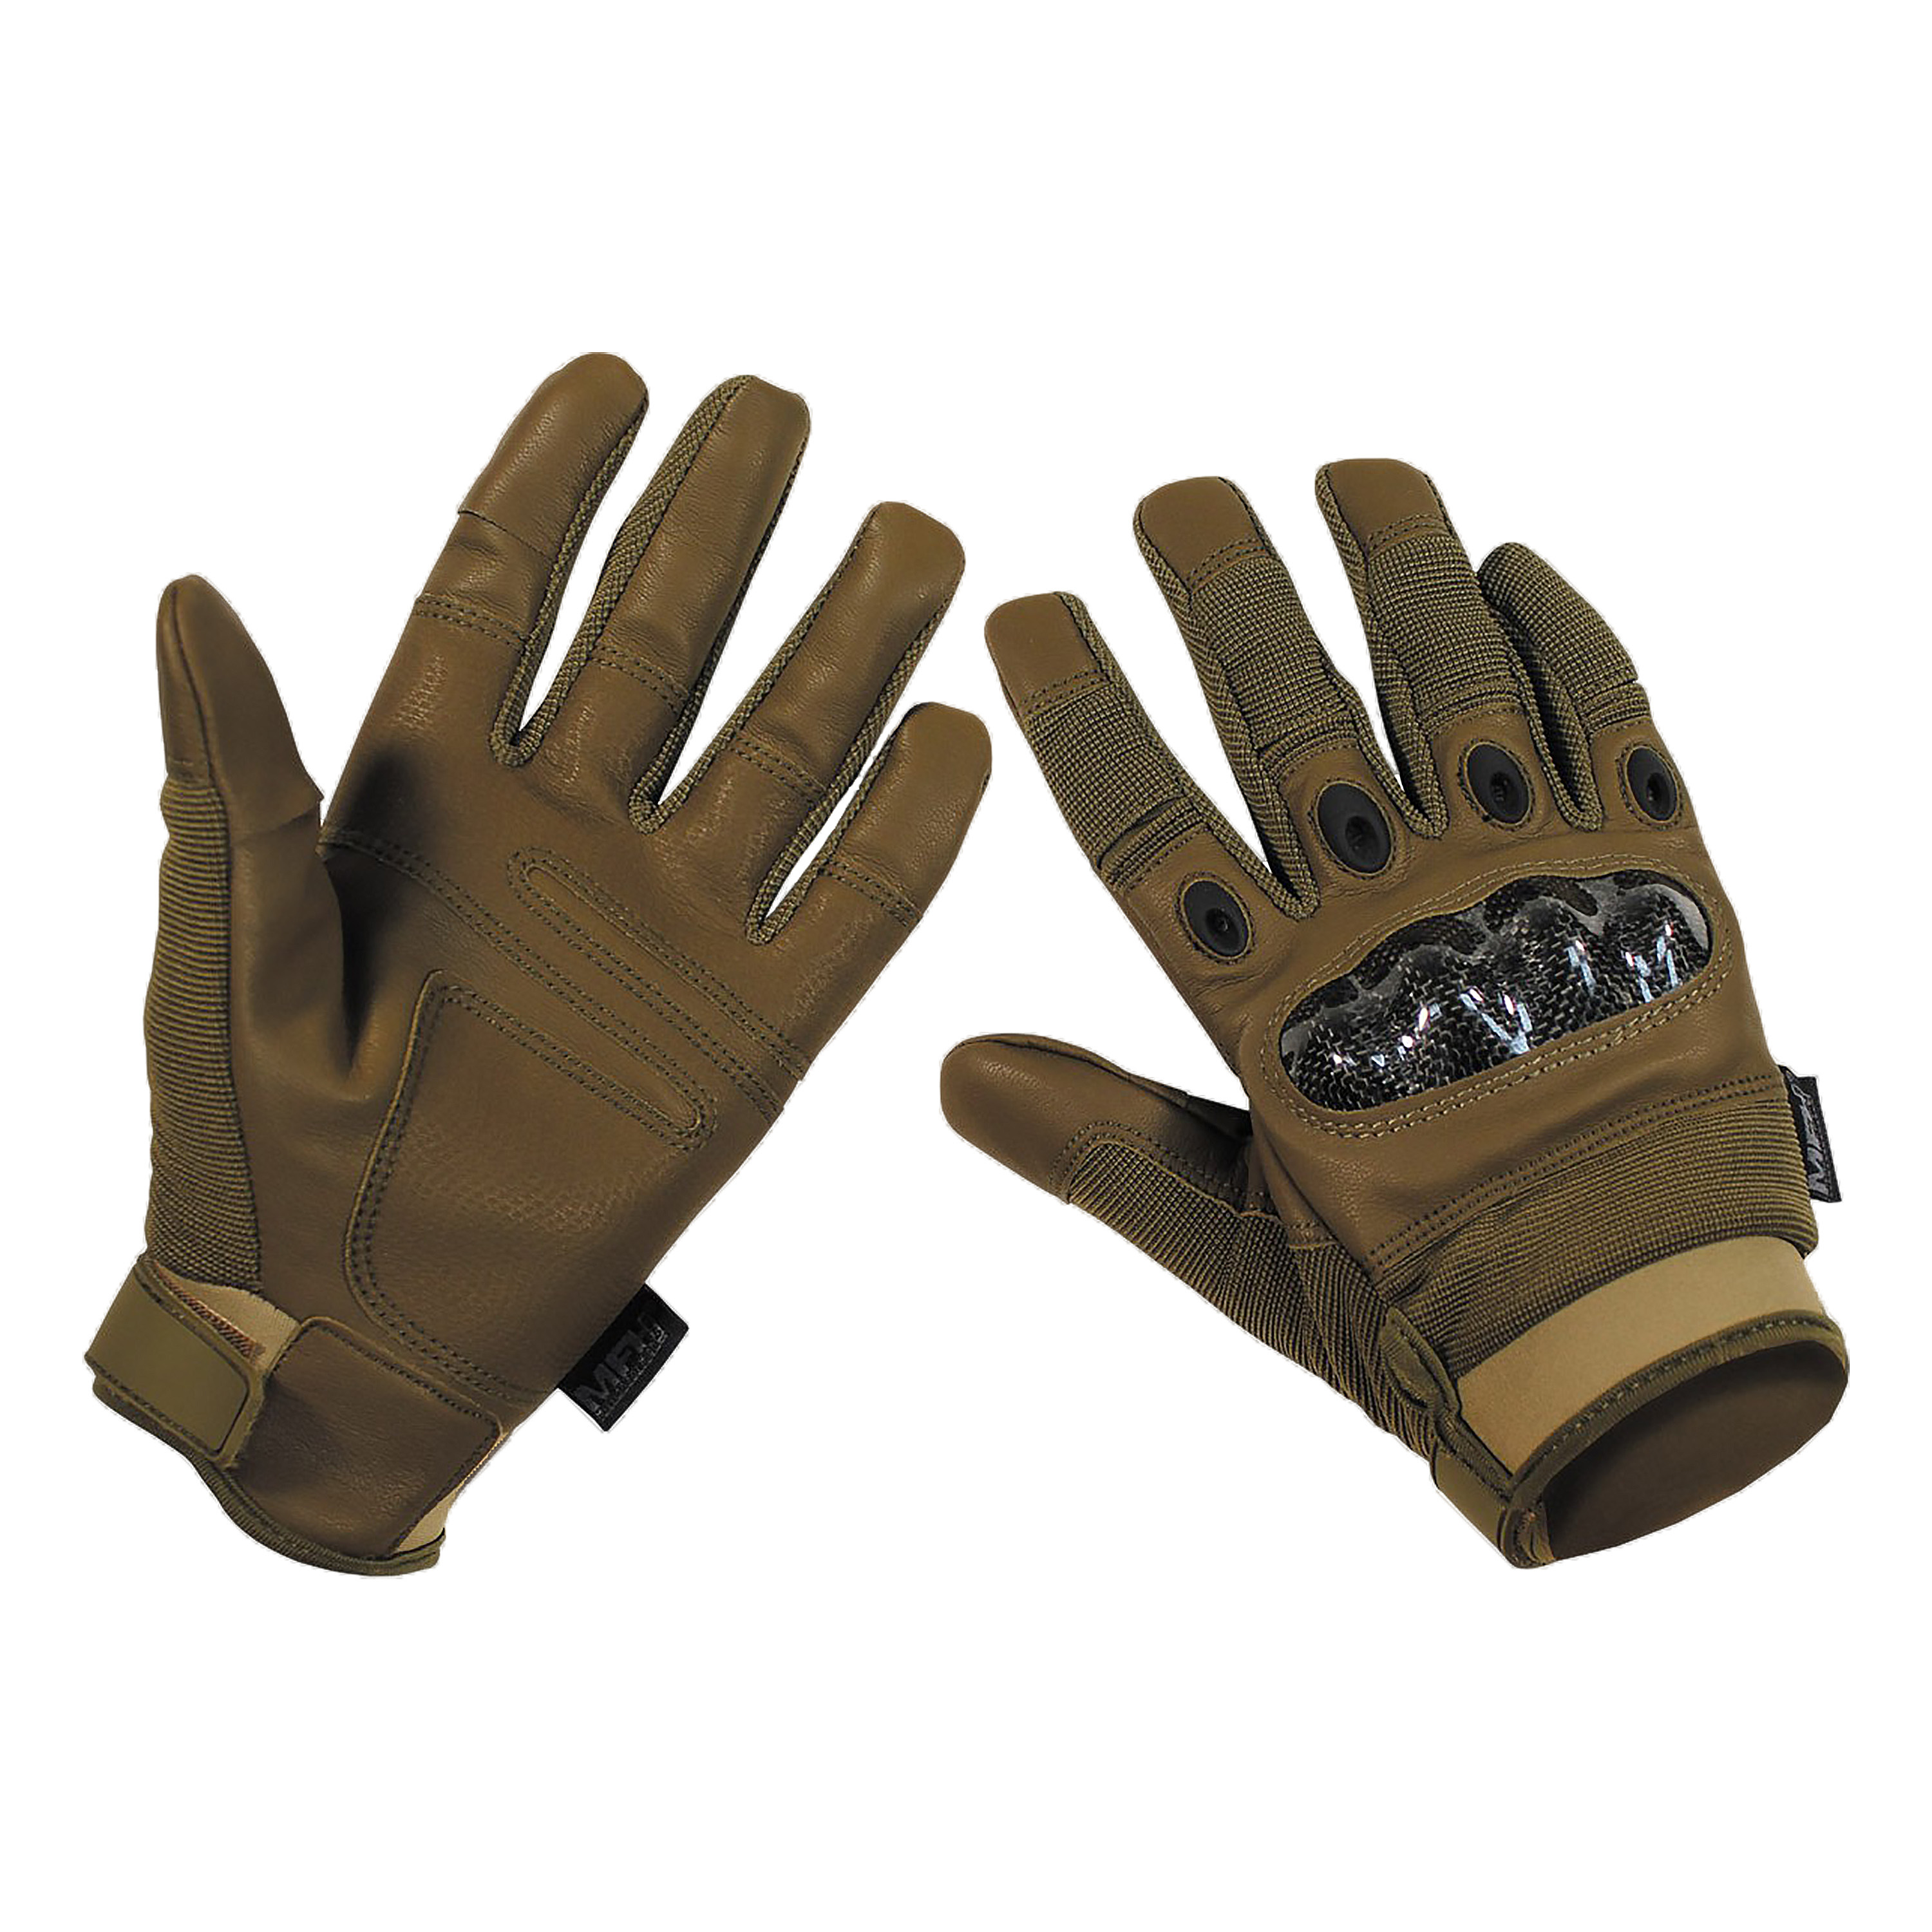 MFH Tactical Handschuhe Mission coyote